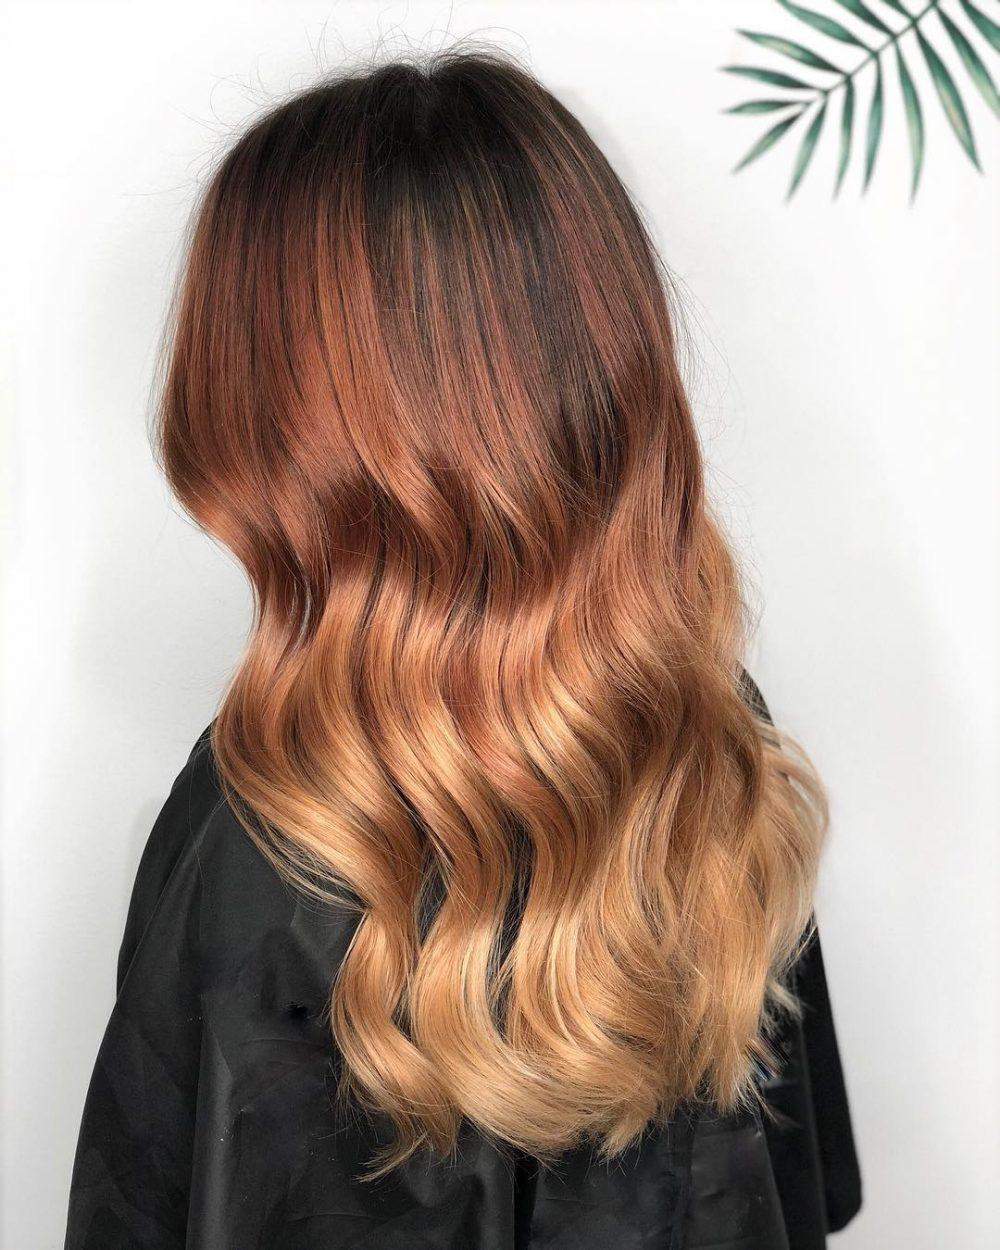 Coiffure Melted Auburn Waves